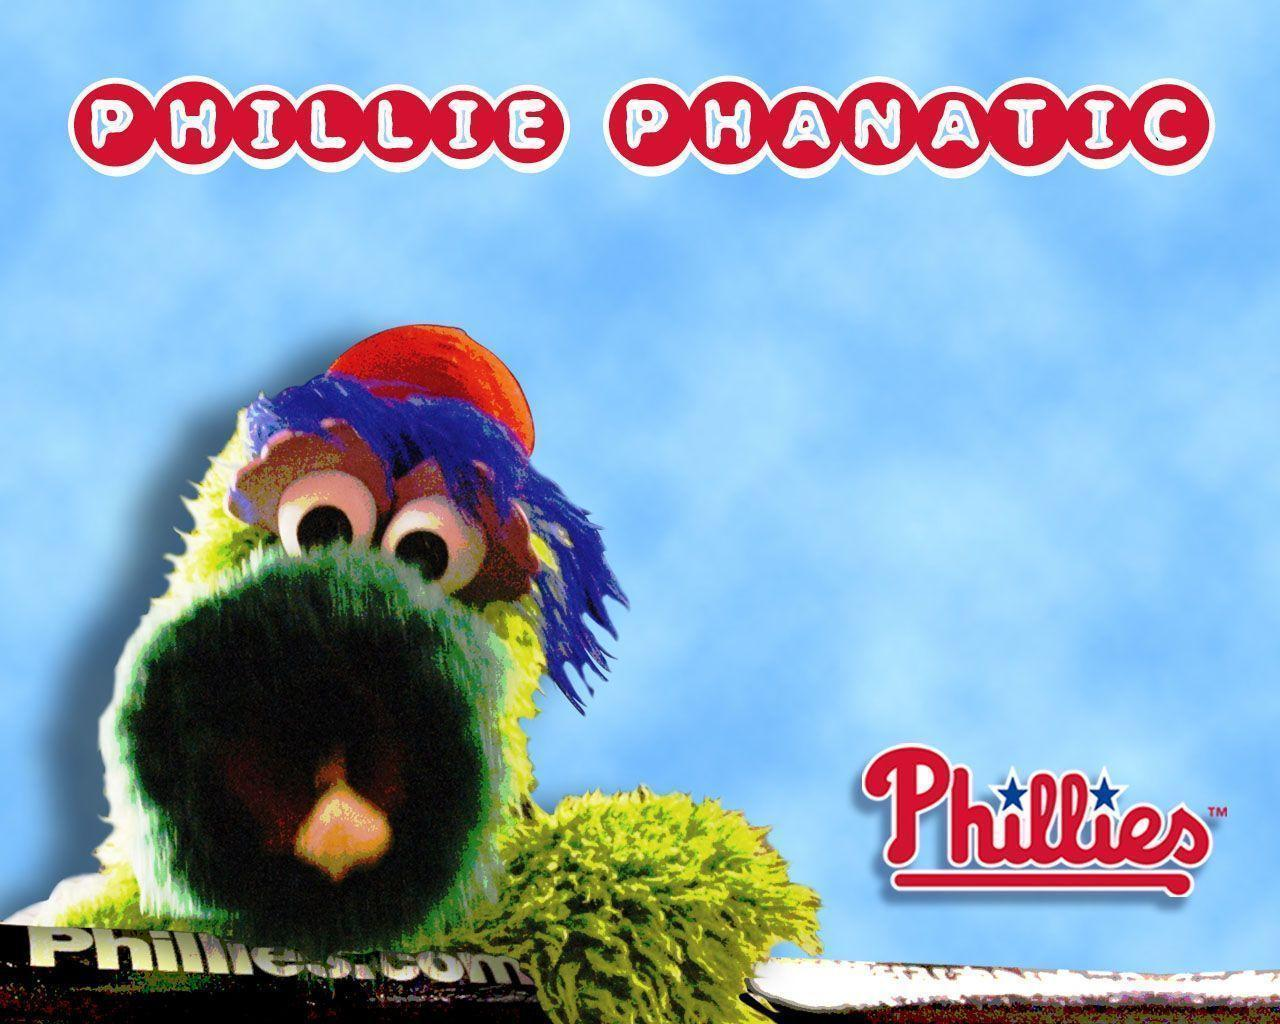 Phillie Phanatic - Wallpaper | phillies.com: Fan Forum